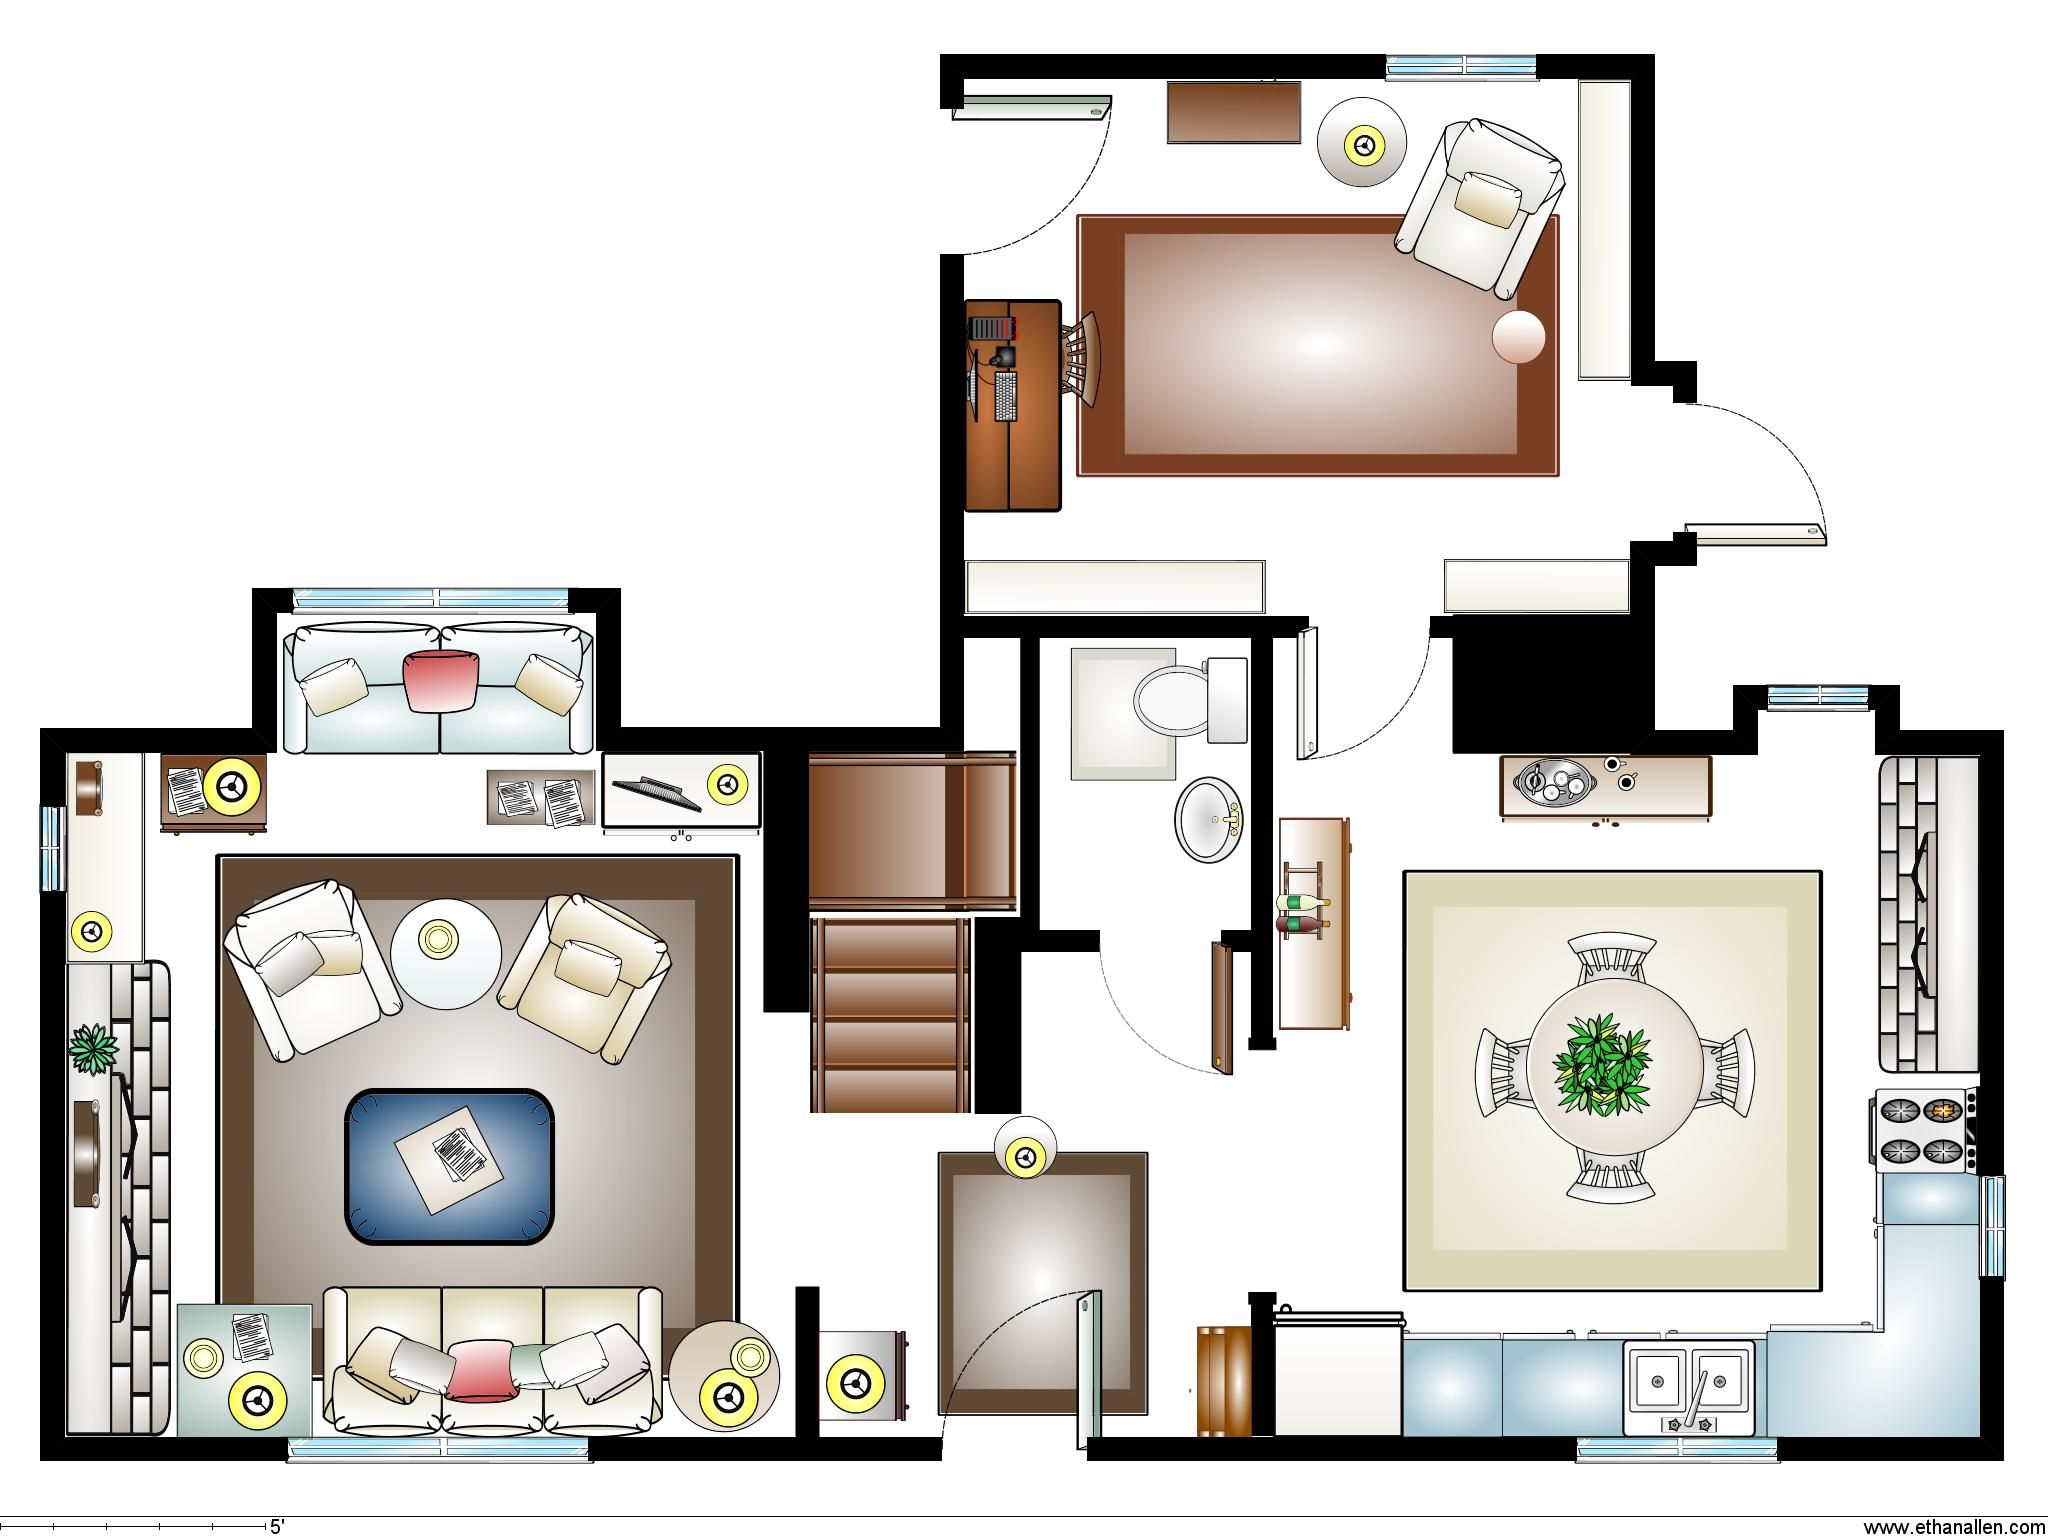 floor plan for rosehill cottage in the movie